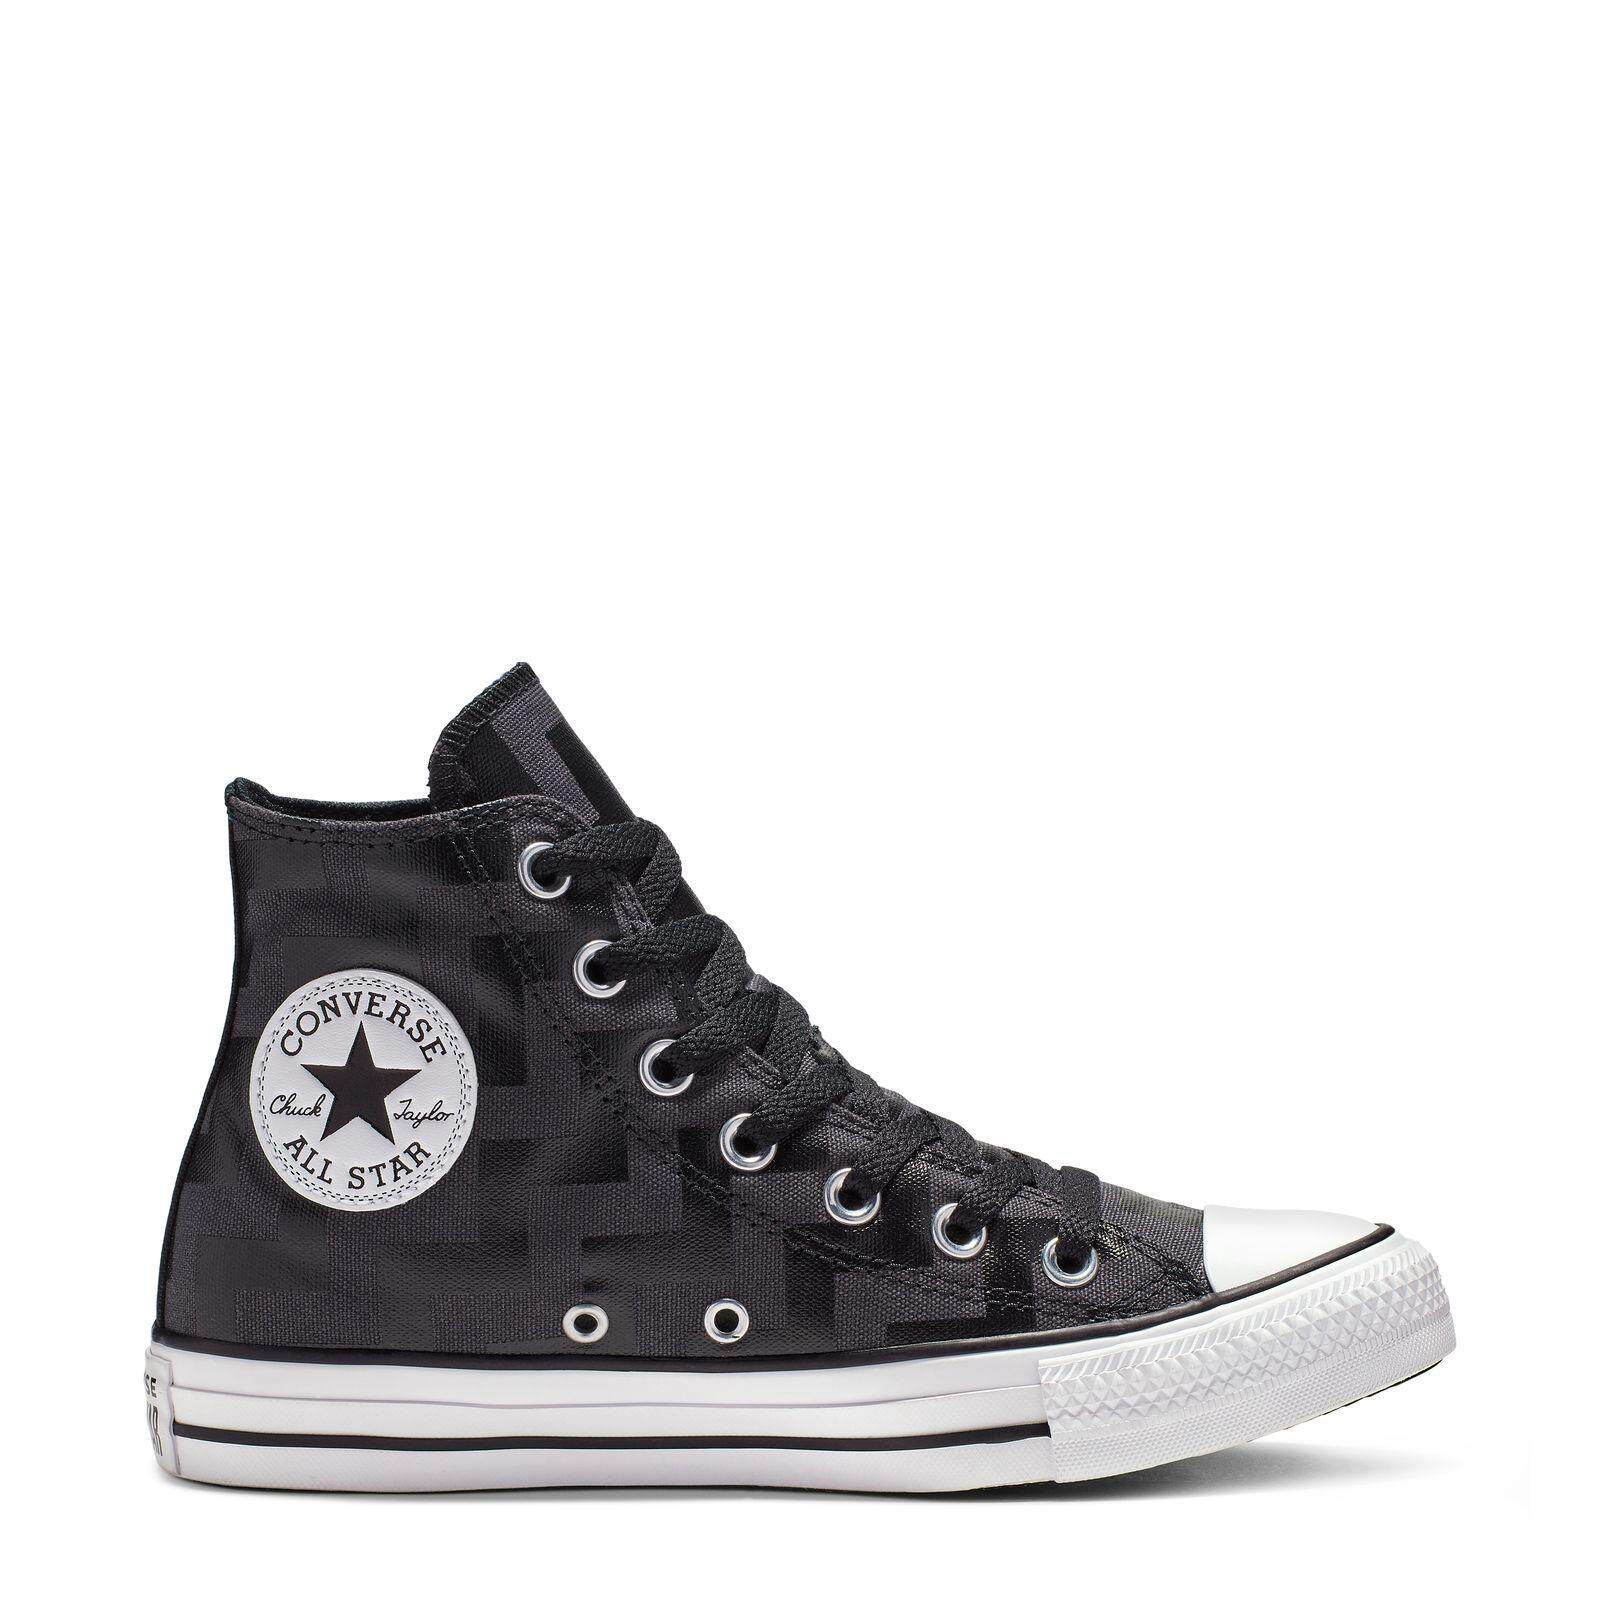 ยี่ห้อไหนดี  กาฬสินธุ์ CONVERSE CHUCK TAYLOR ALL STAR GLAM DUNK - HI - BLACK/ALMOST BLACK/WHITE - WOMEN - 565212C - 565212CF9BK